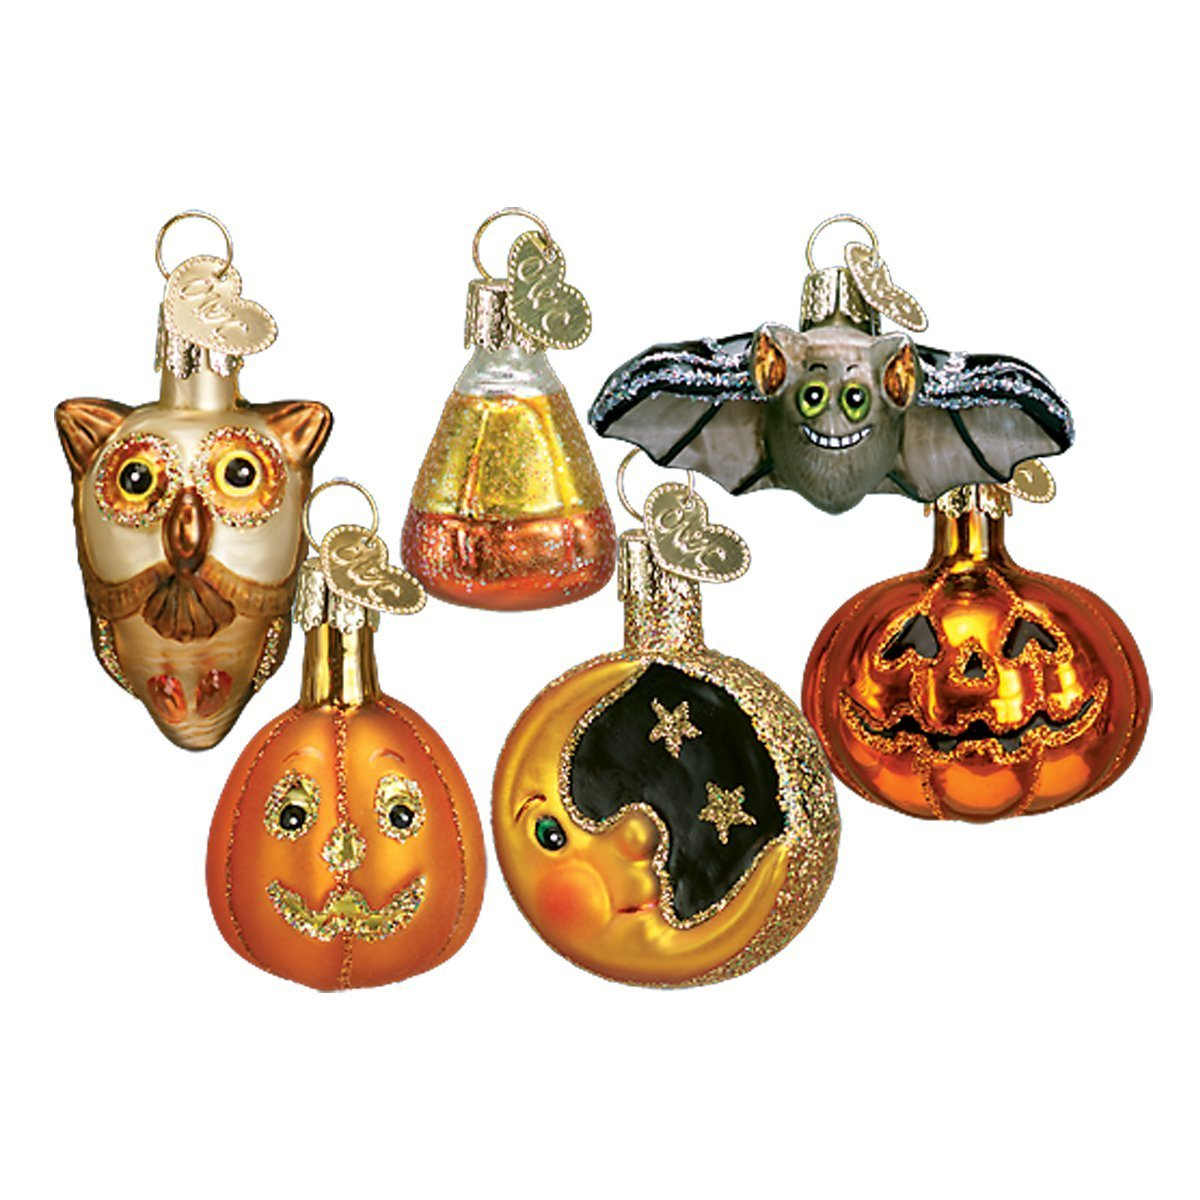 Brand new Amazon.com: Old World Christmas Miniature Halloween Assortment  MS41